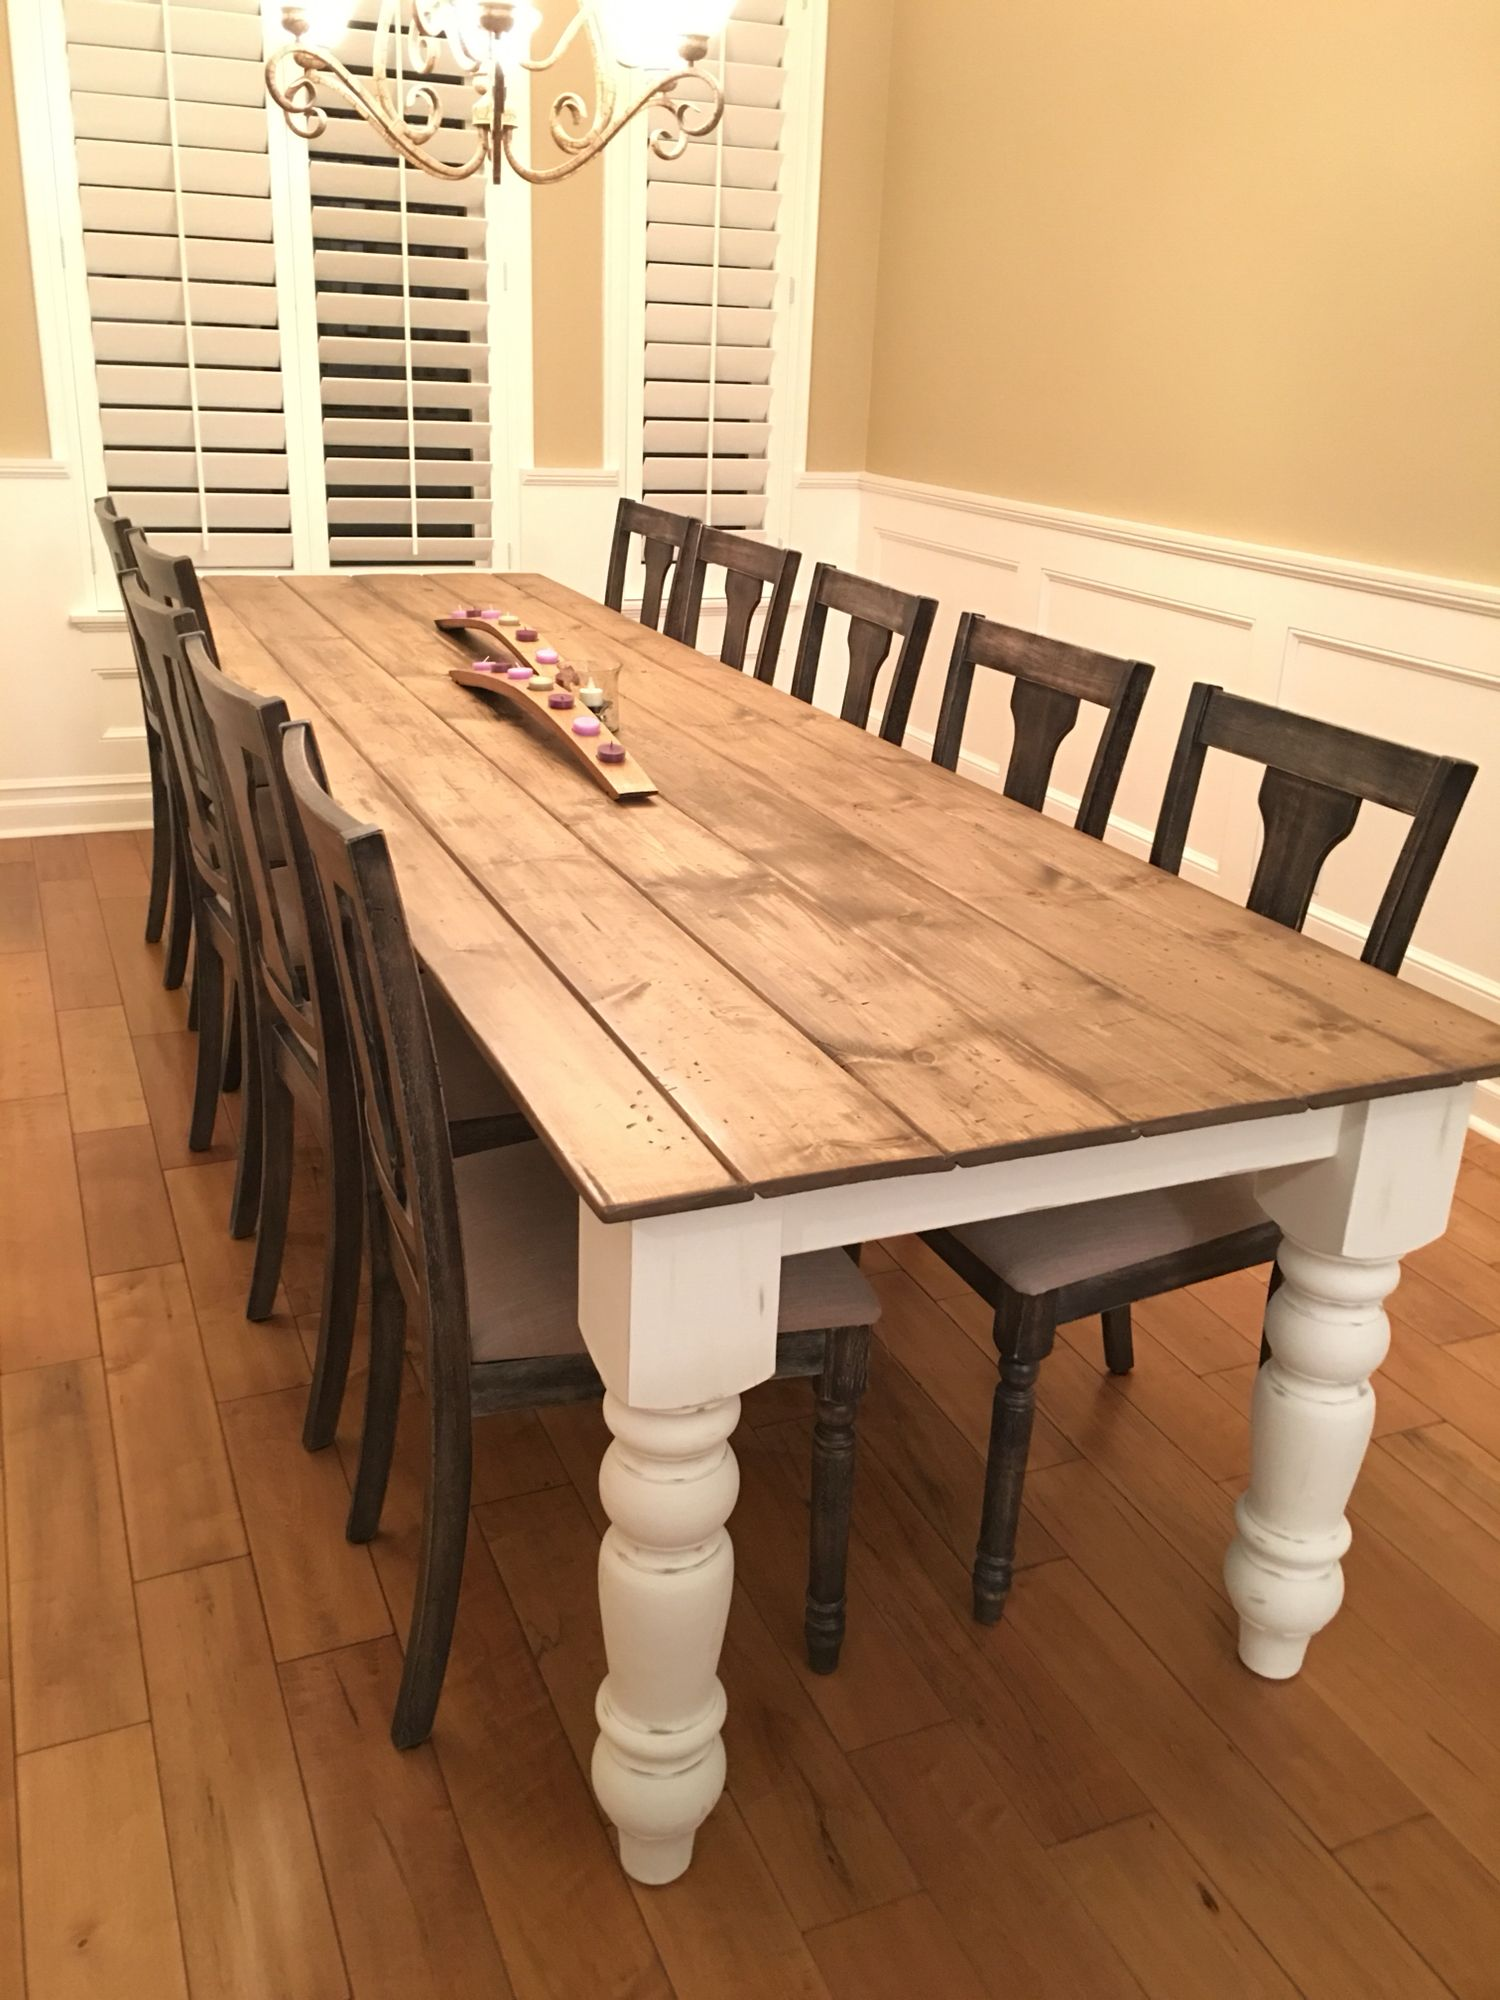 My Husband Made My  Inch Farmhouse Table Top Made With Shiplap I Painted And Distressed It Legs And Apron Ordered From Osborne Wood Products